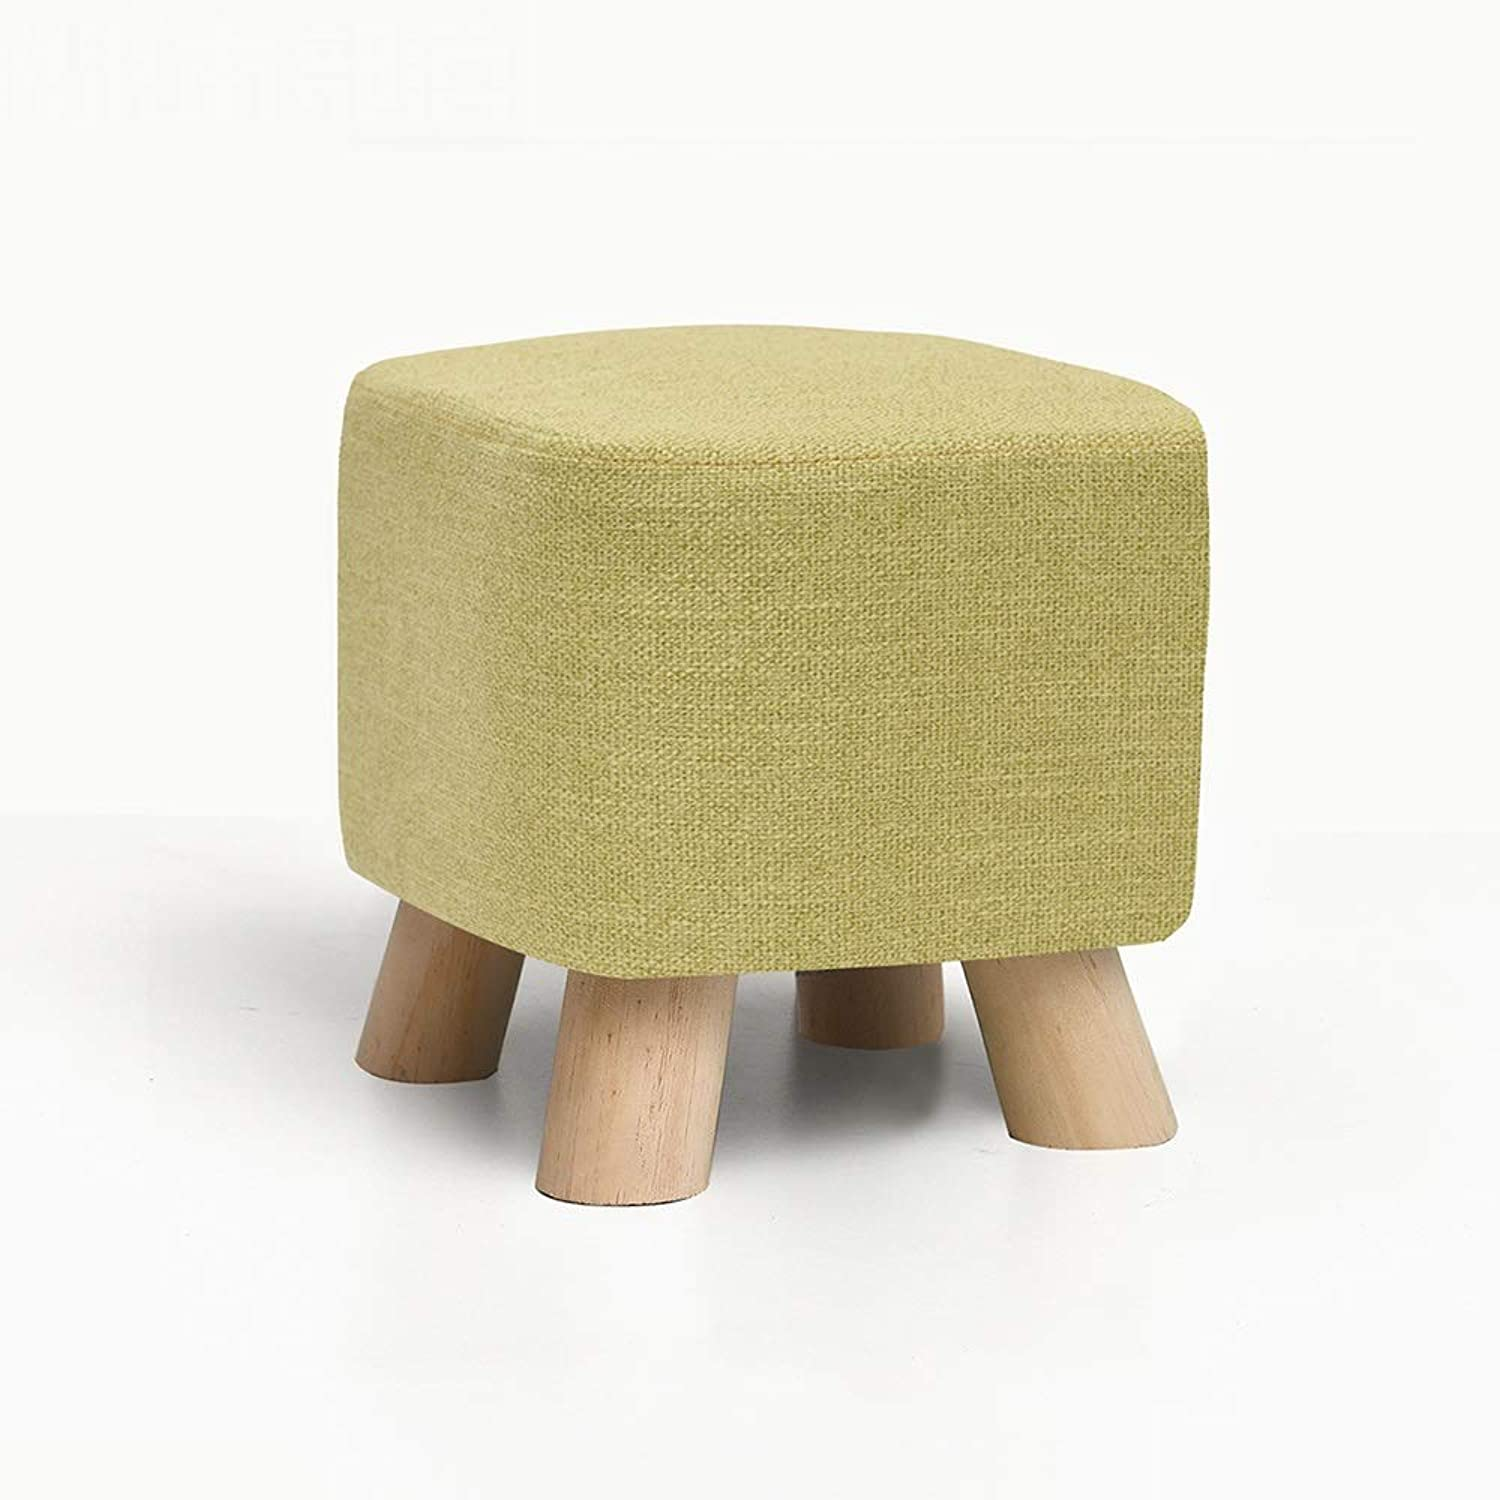 YQQ Change The shoes Bench, Dressing Stool Sofa Stool Makeup Stool Low Stool Wooden Bench (color   2)